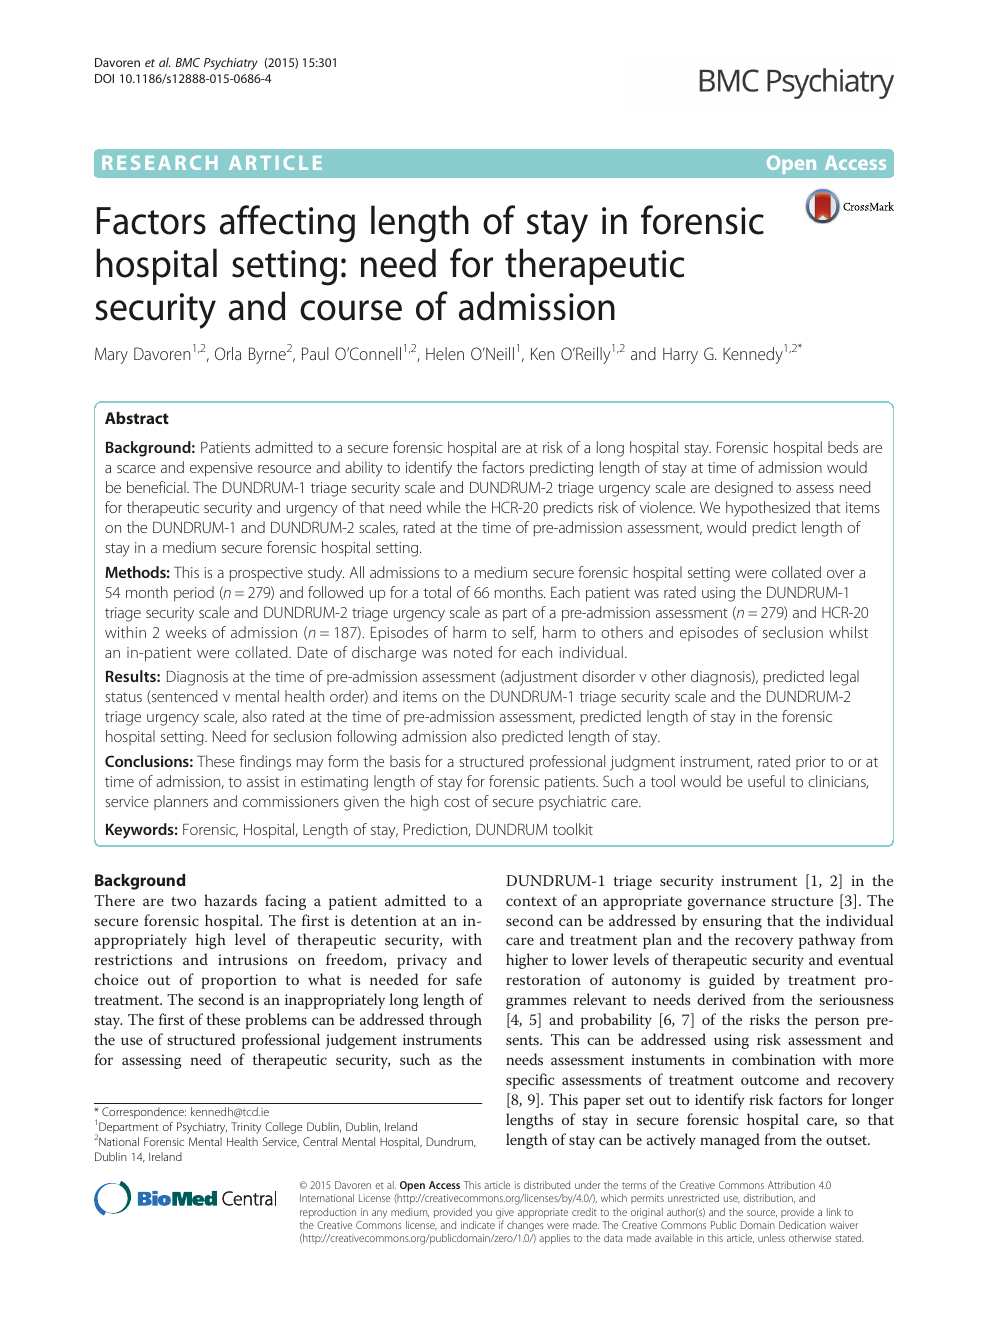 Factors affecting length of stay in forensic hospital setting: need